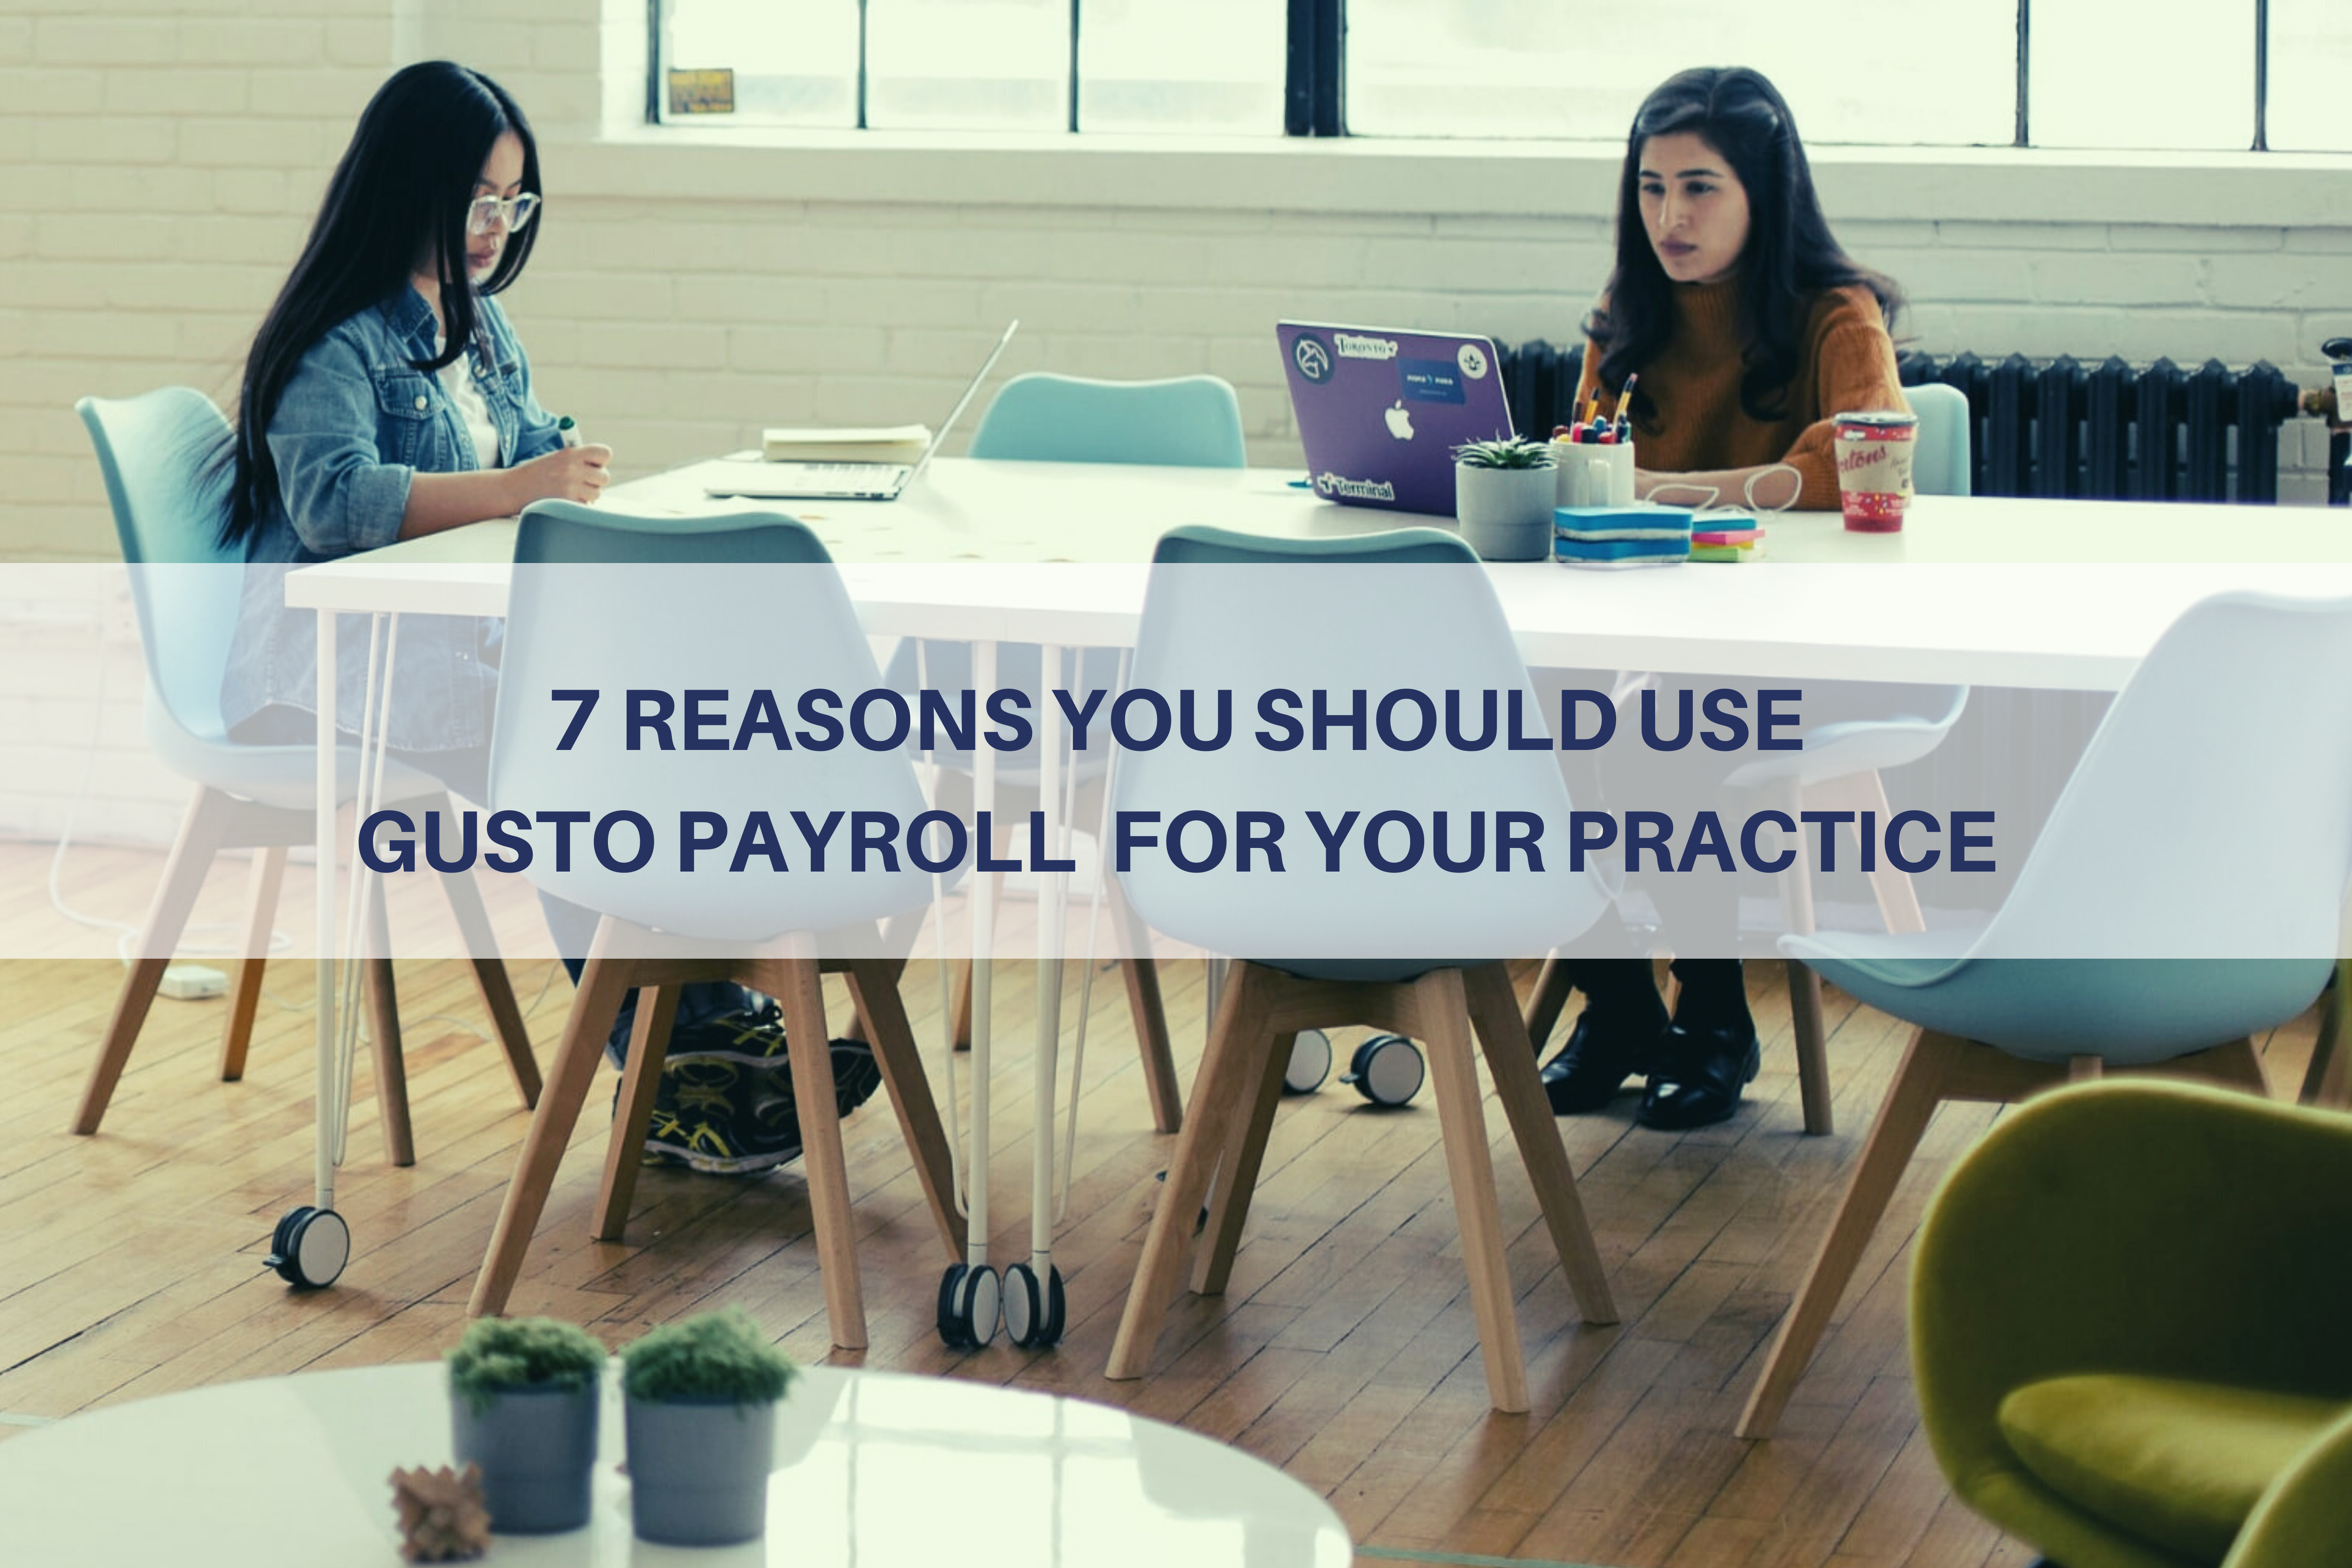 7 Reasons You Should Use Gusto Payroll For Your Practice Thumbnail